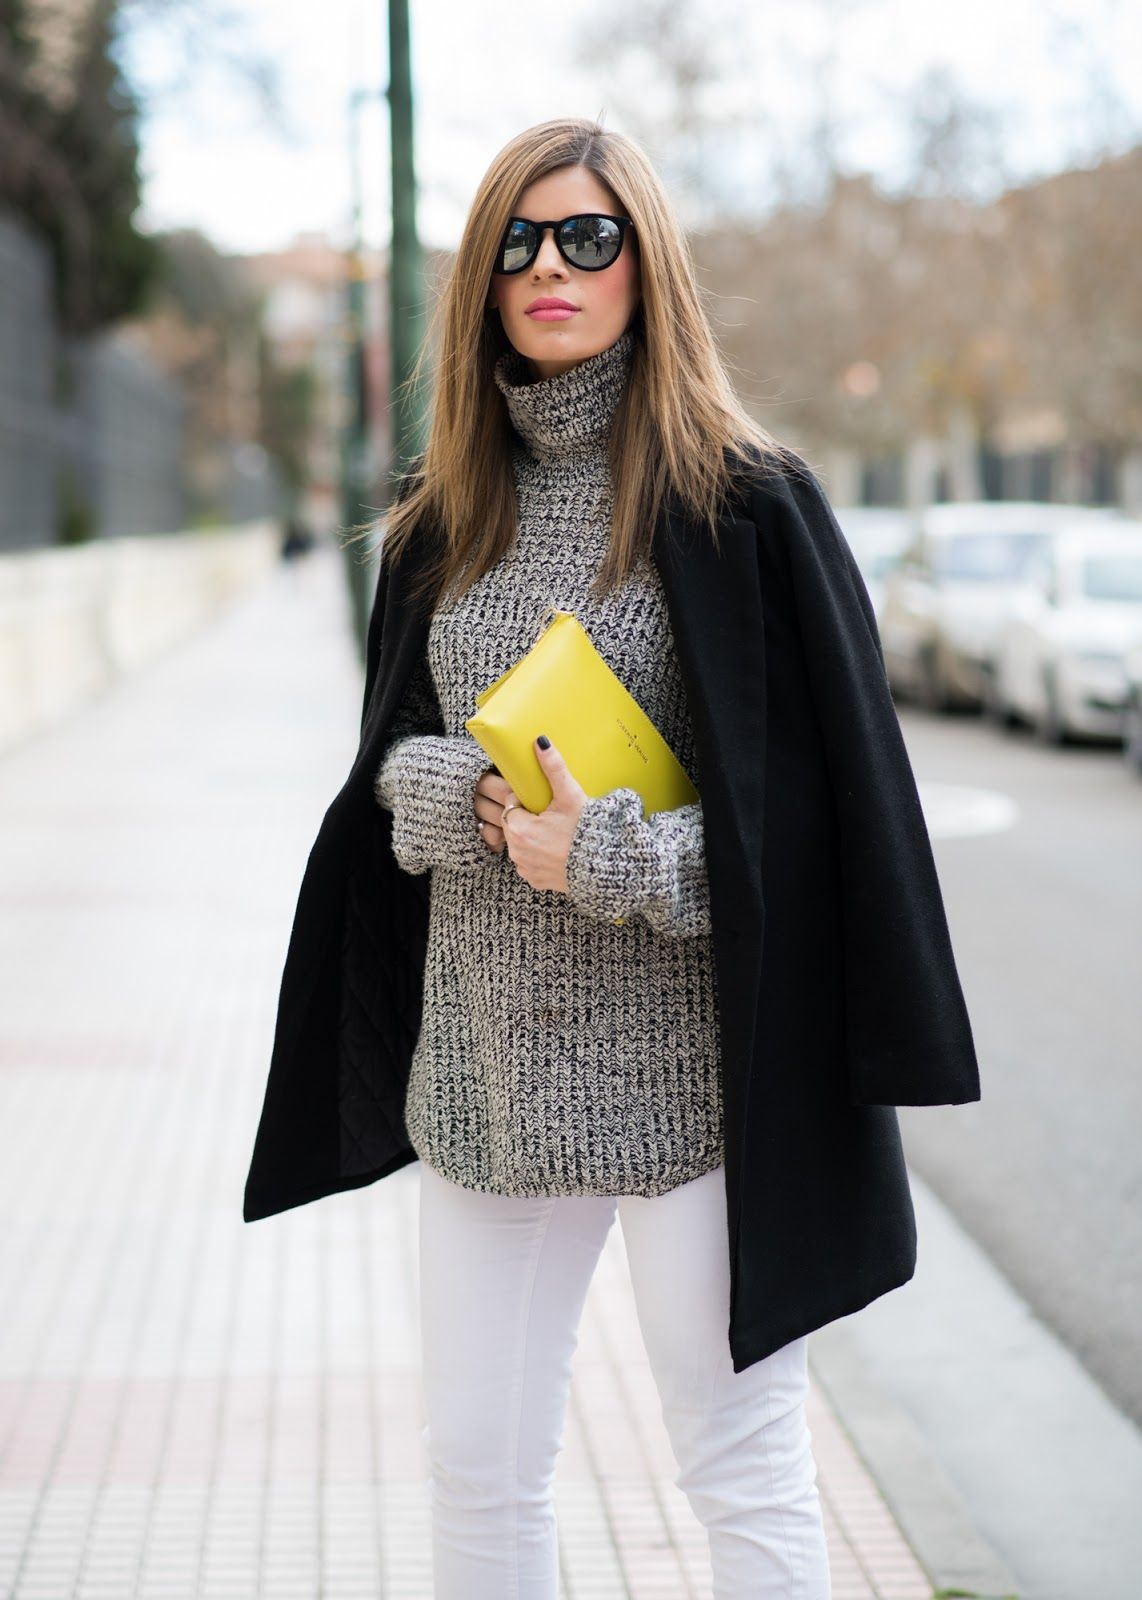 Lady | Blog de moda y tendencias | Sweetrendy